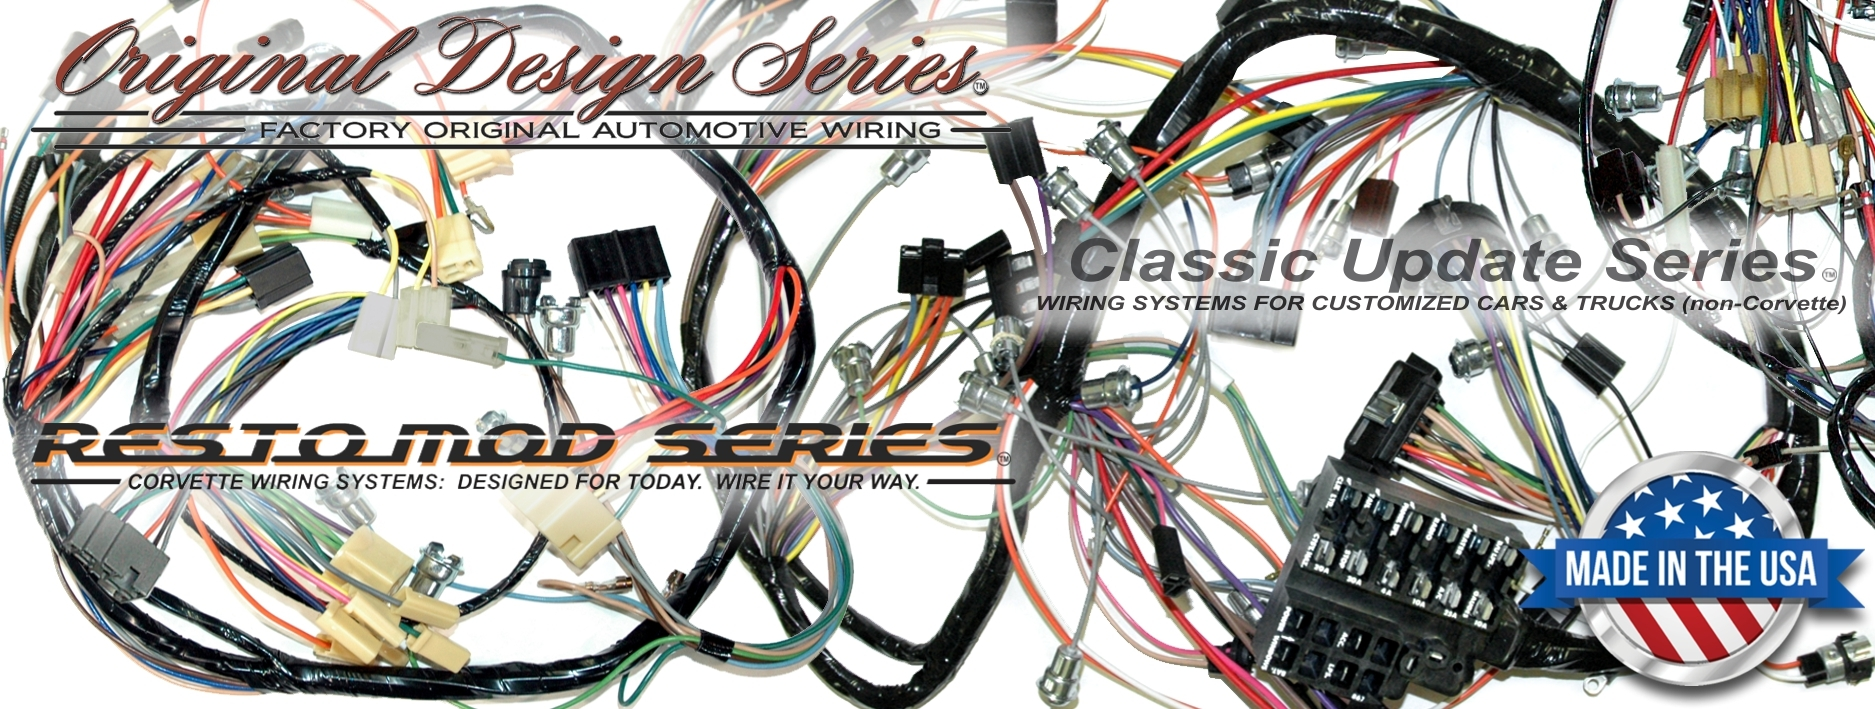 Where To Buy Wire Exact Oem Reproduction Wiring Harnesses And Restomod Wiring